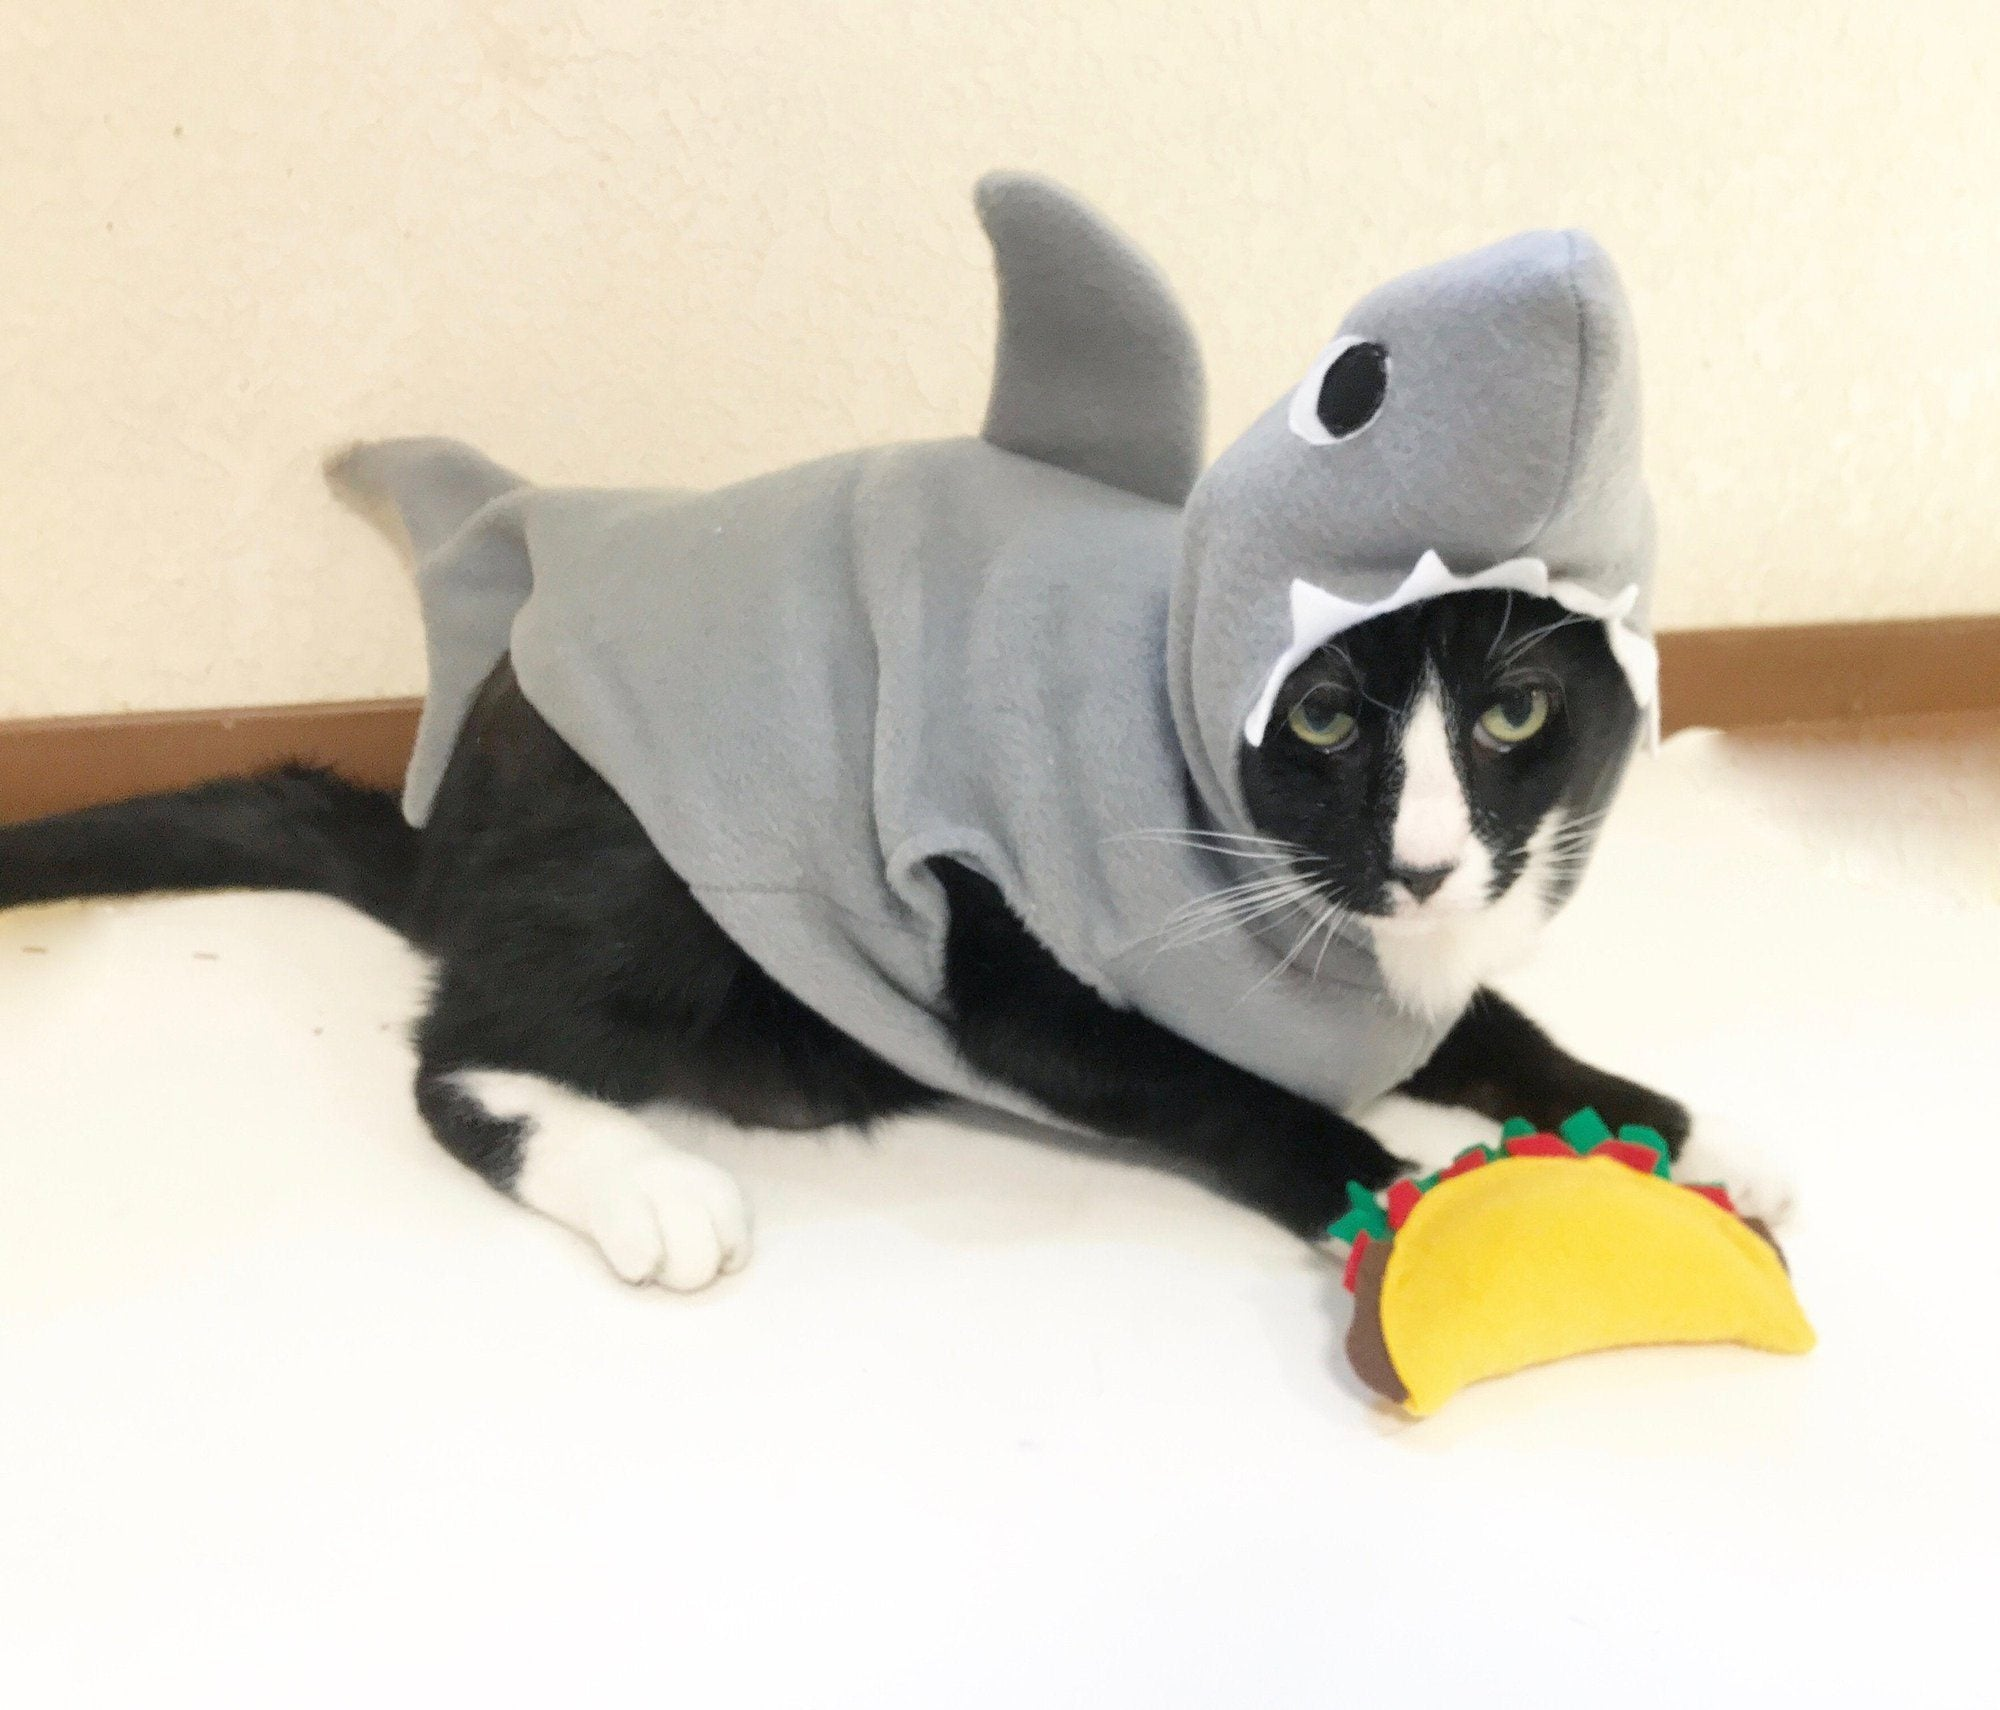 Cat Costumes for Every Purr-sonality This Halloween